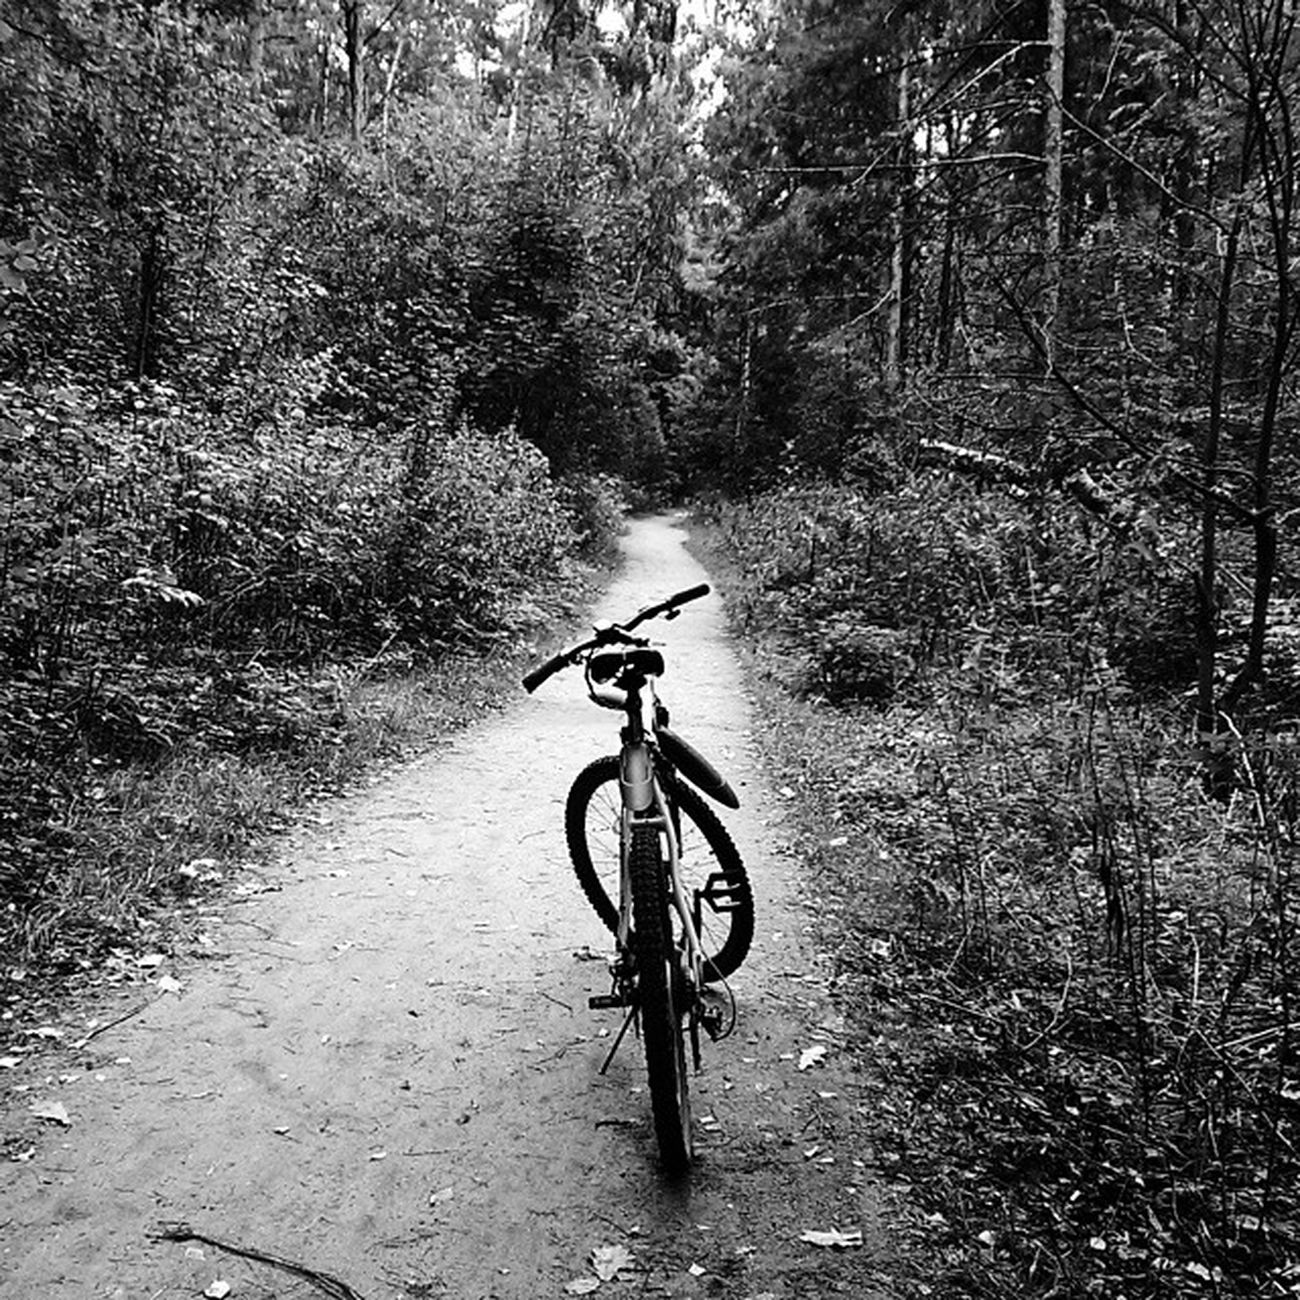 Vscocam VSCO Vscomafia Like likeit bike russia black and white forest wood followme follow autumn road instamark instasize